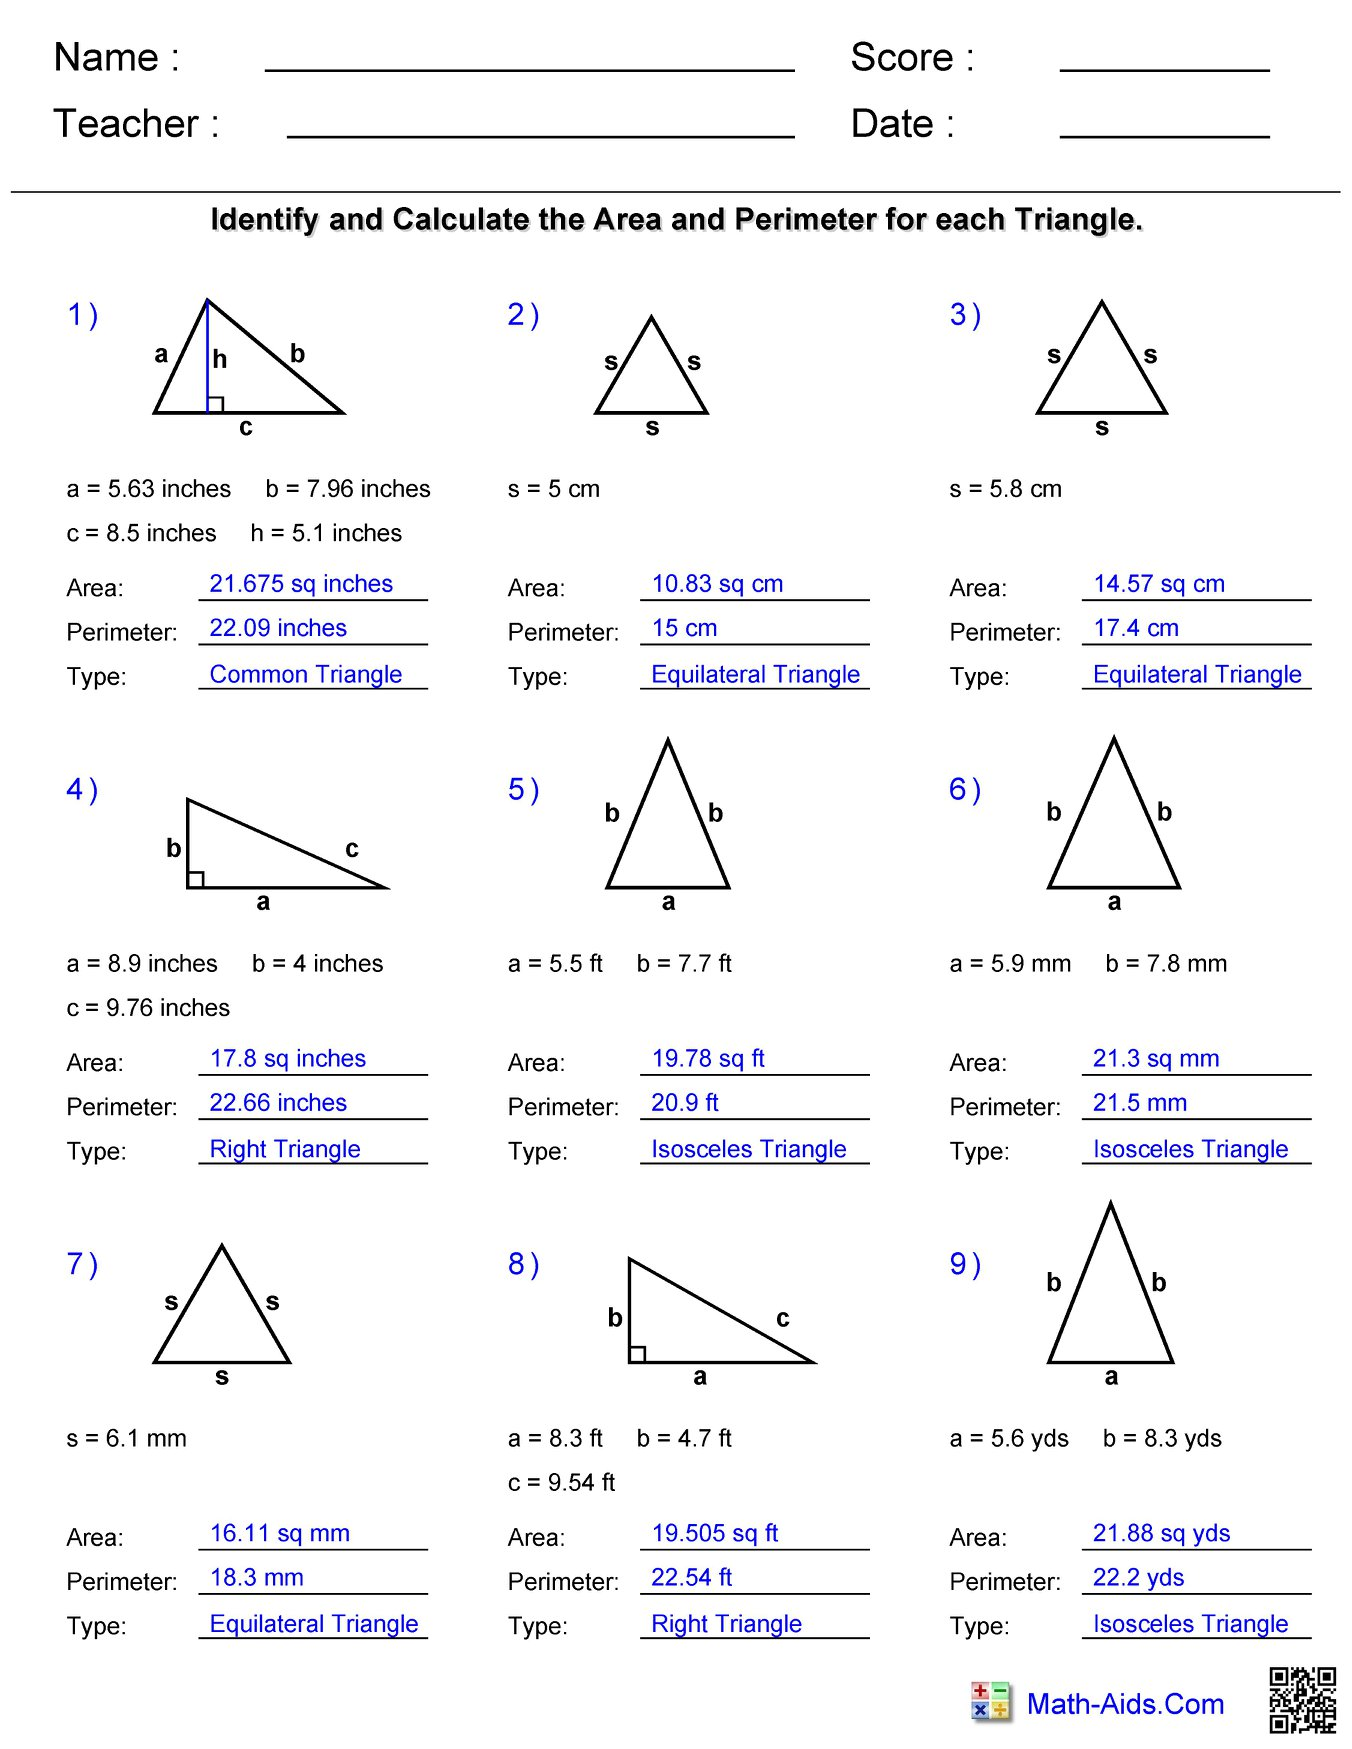 Triangle Area And Perimeter Answers Hoeden Homeschool